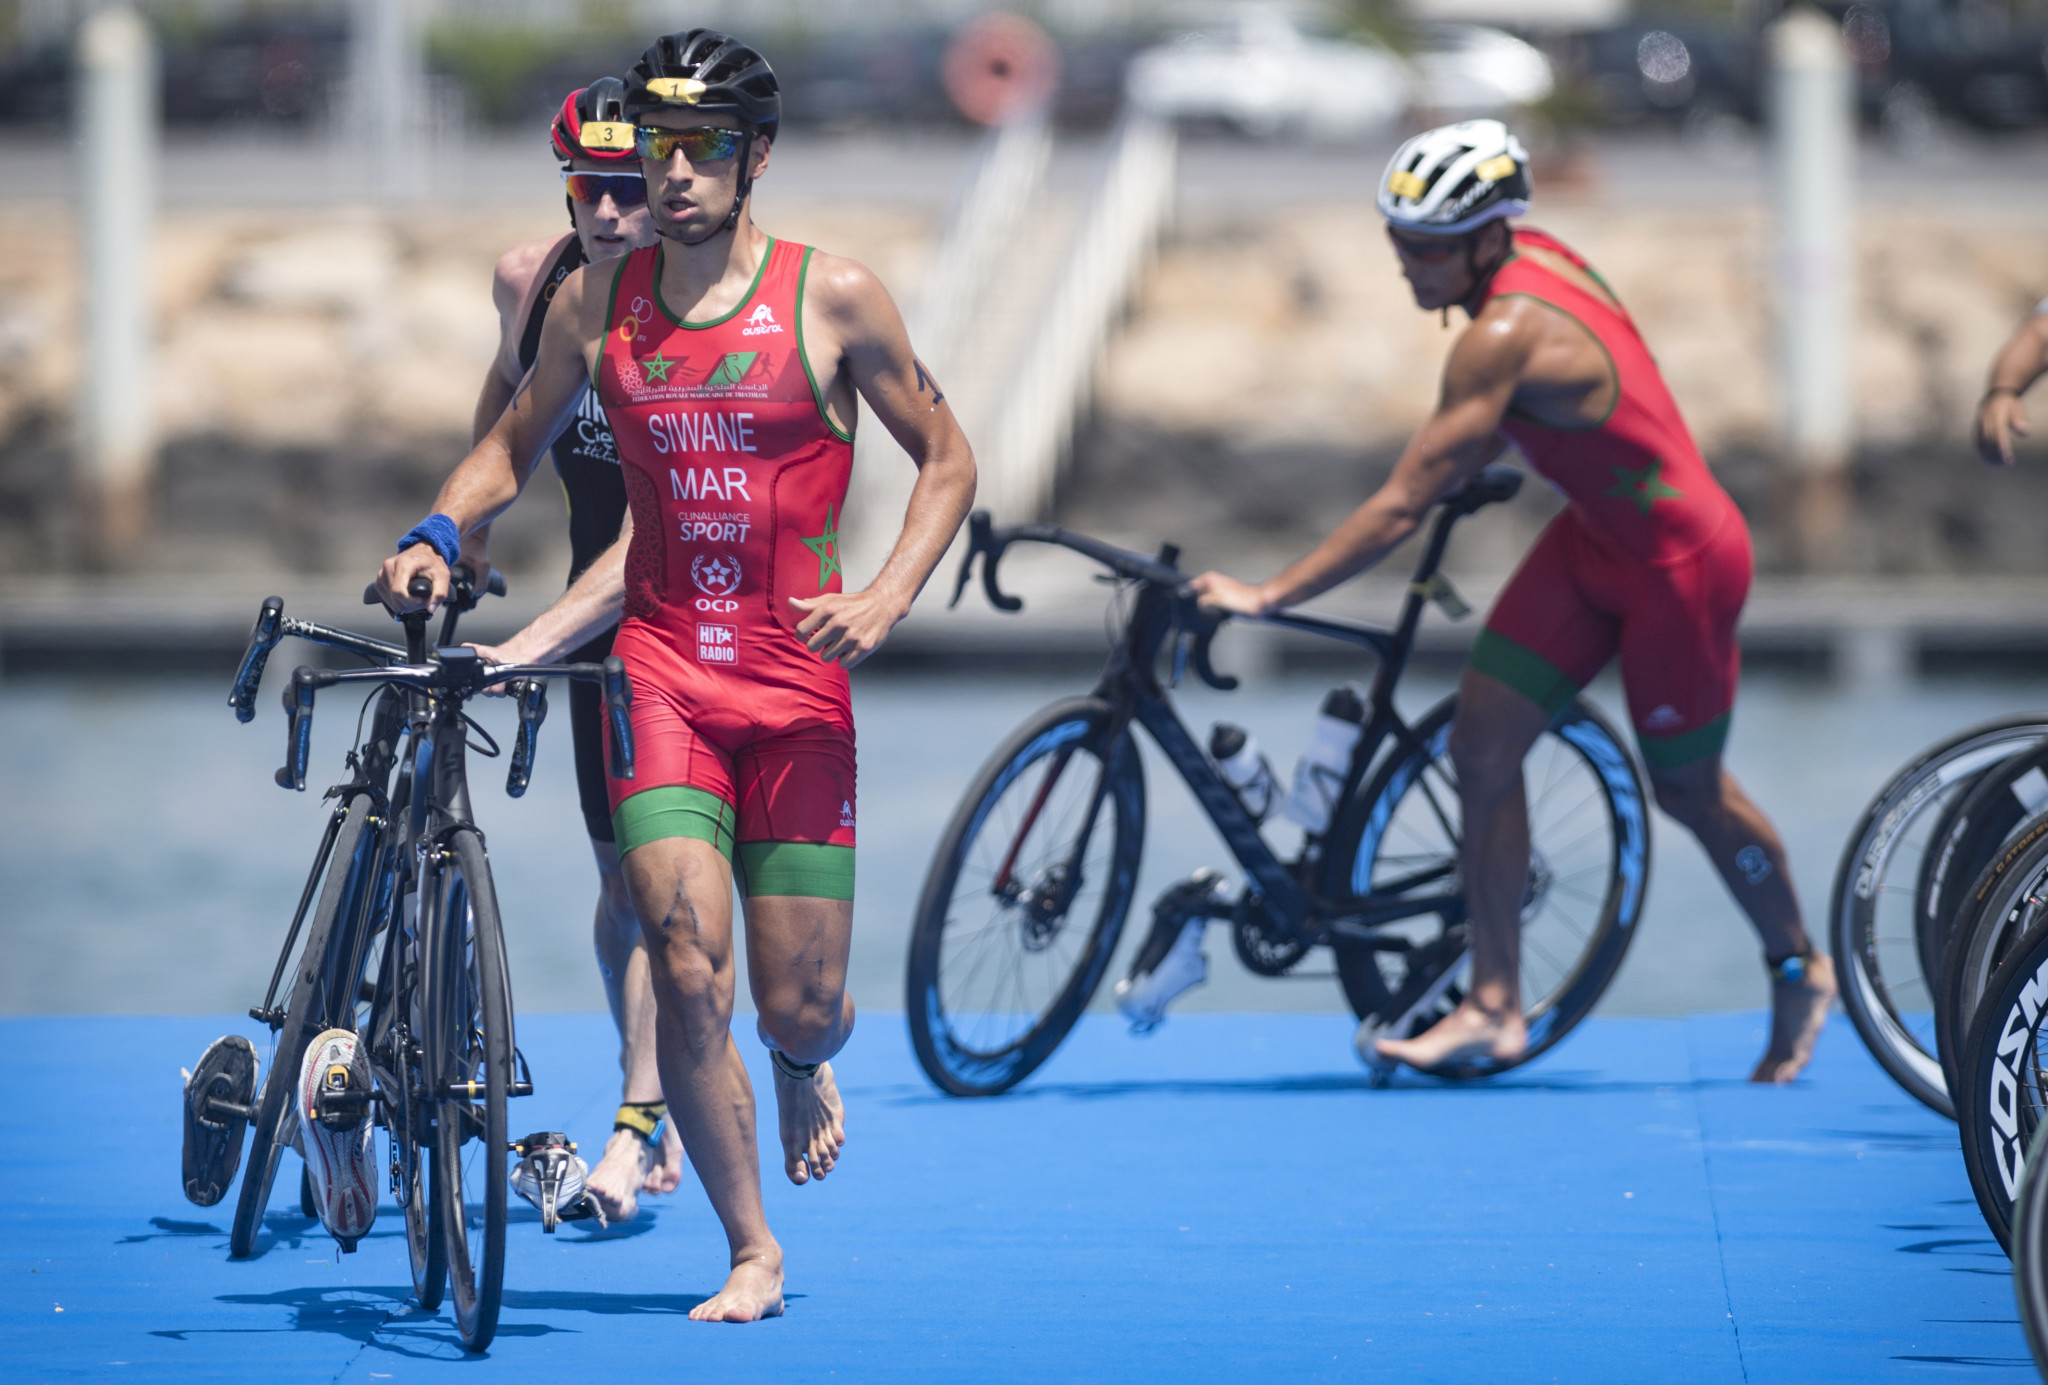 World Triathlon announce 2021 athlete scholarship programme